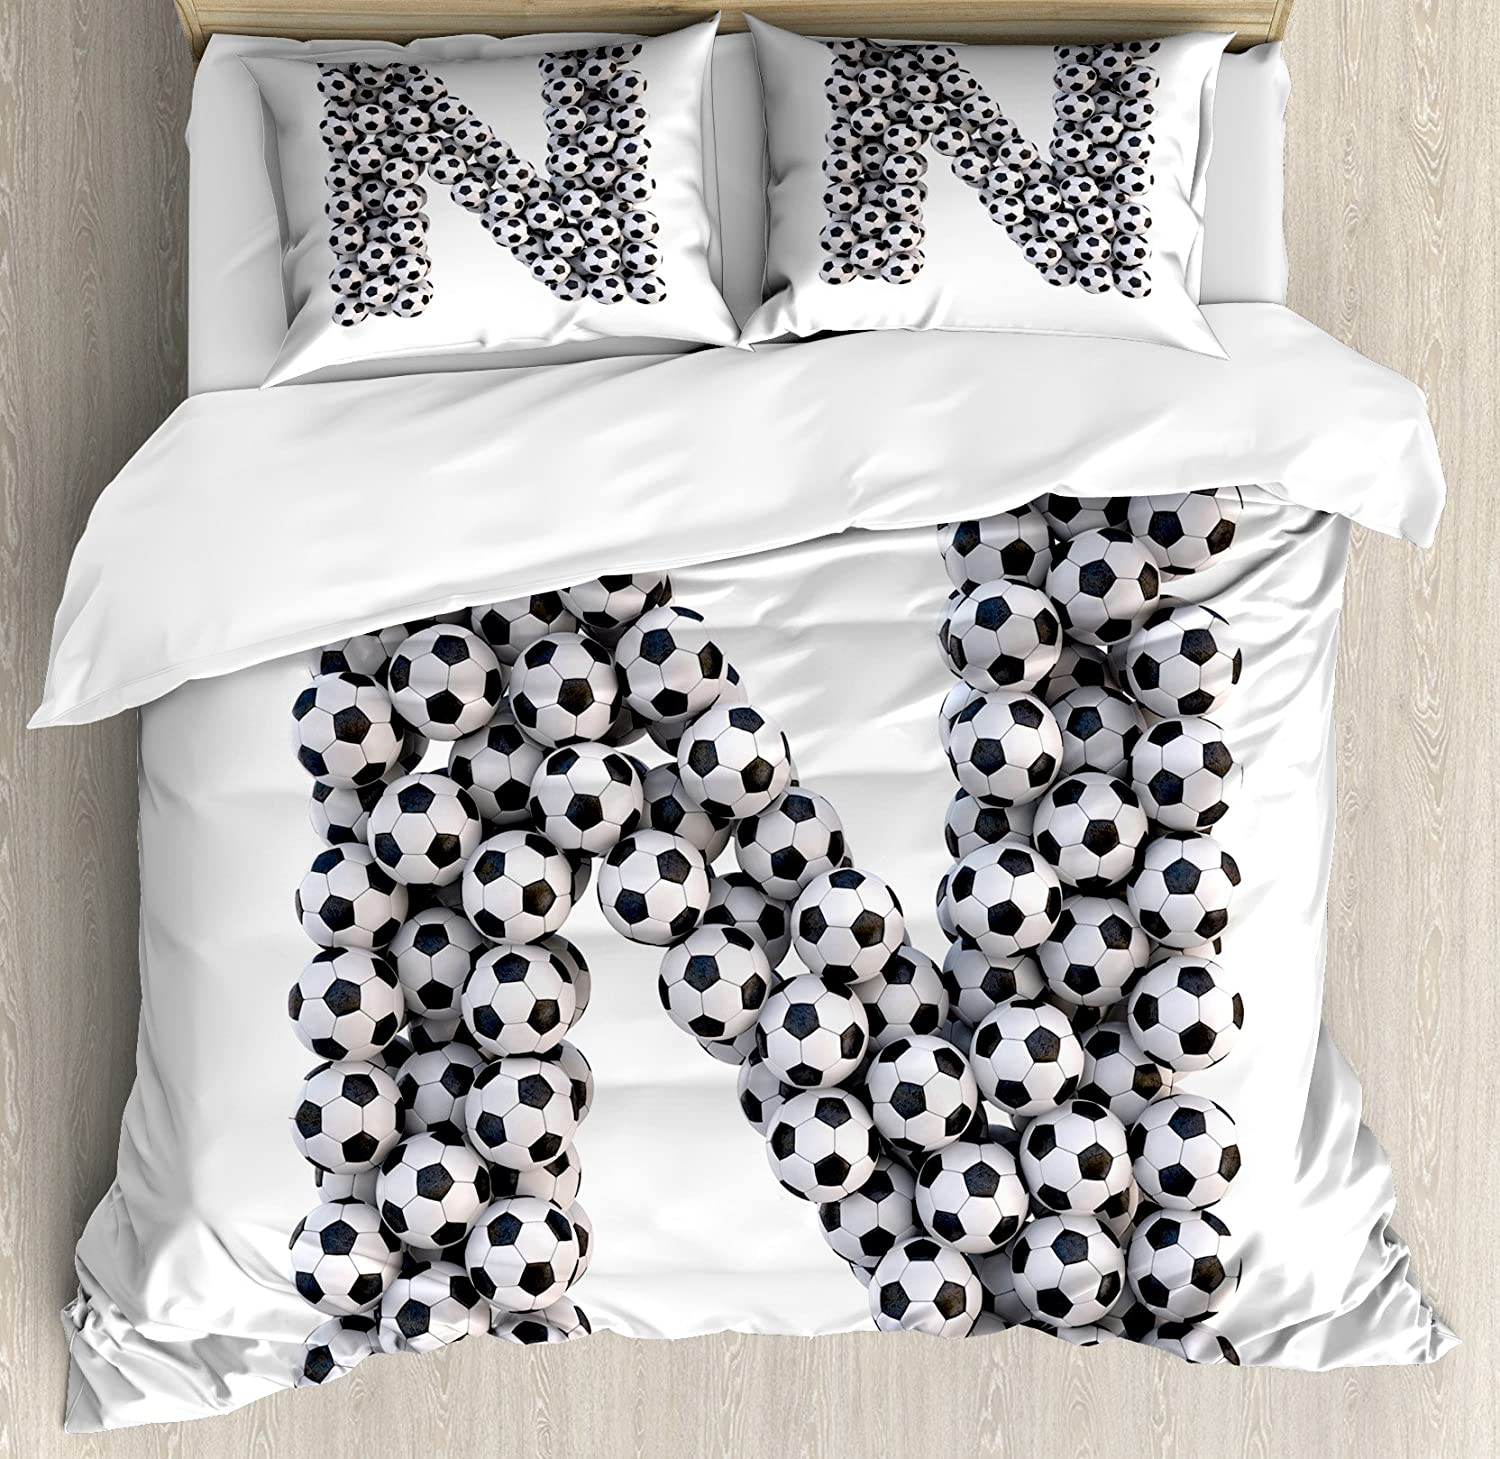 Aesthetic First Nations Feather and Peacock Tail In Traditional Design Theme Ambesonne Feather House Decor Duvet Cover Set A Decorative 3 Piece Bedding Set with Pillow Shams Mint Yellow nev/_20242/_queen Queen//Full